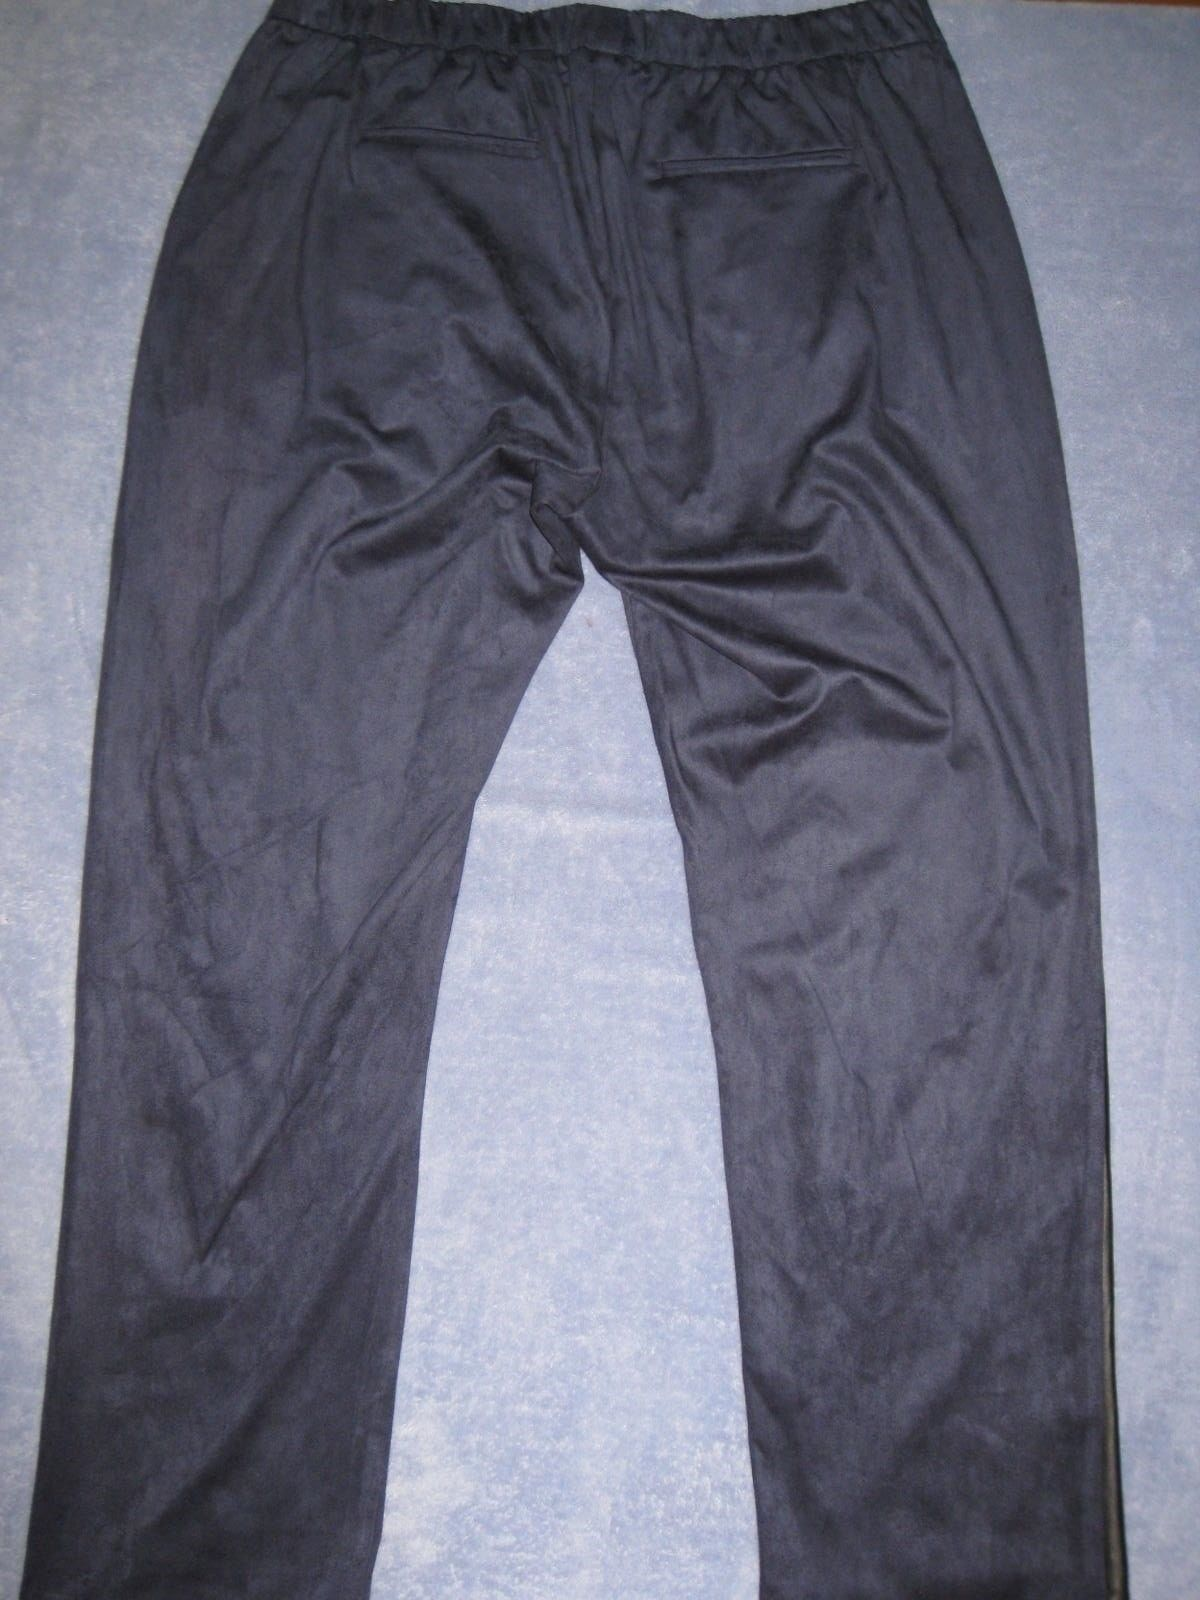 Pants Mynt 1792 Faux Suede Pegged Pleat Tuxedo Pants NEW 16W NWT $188